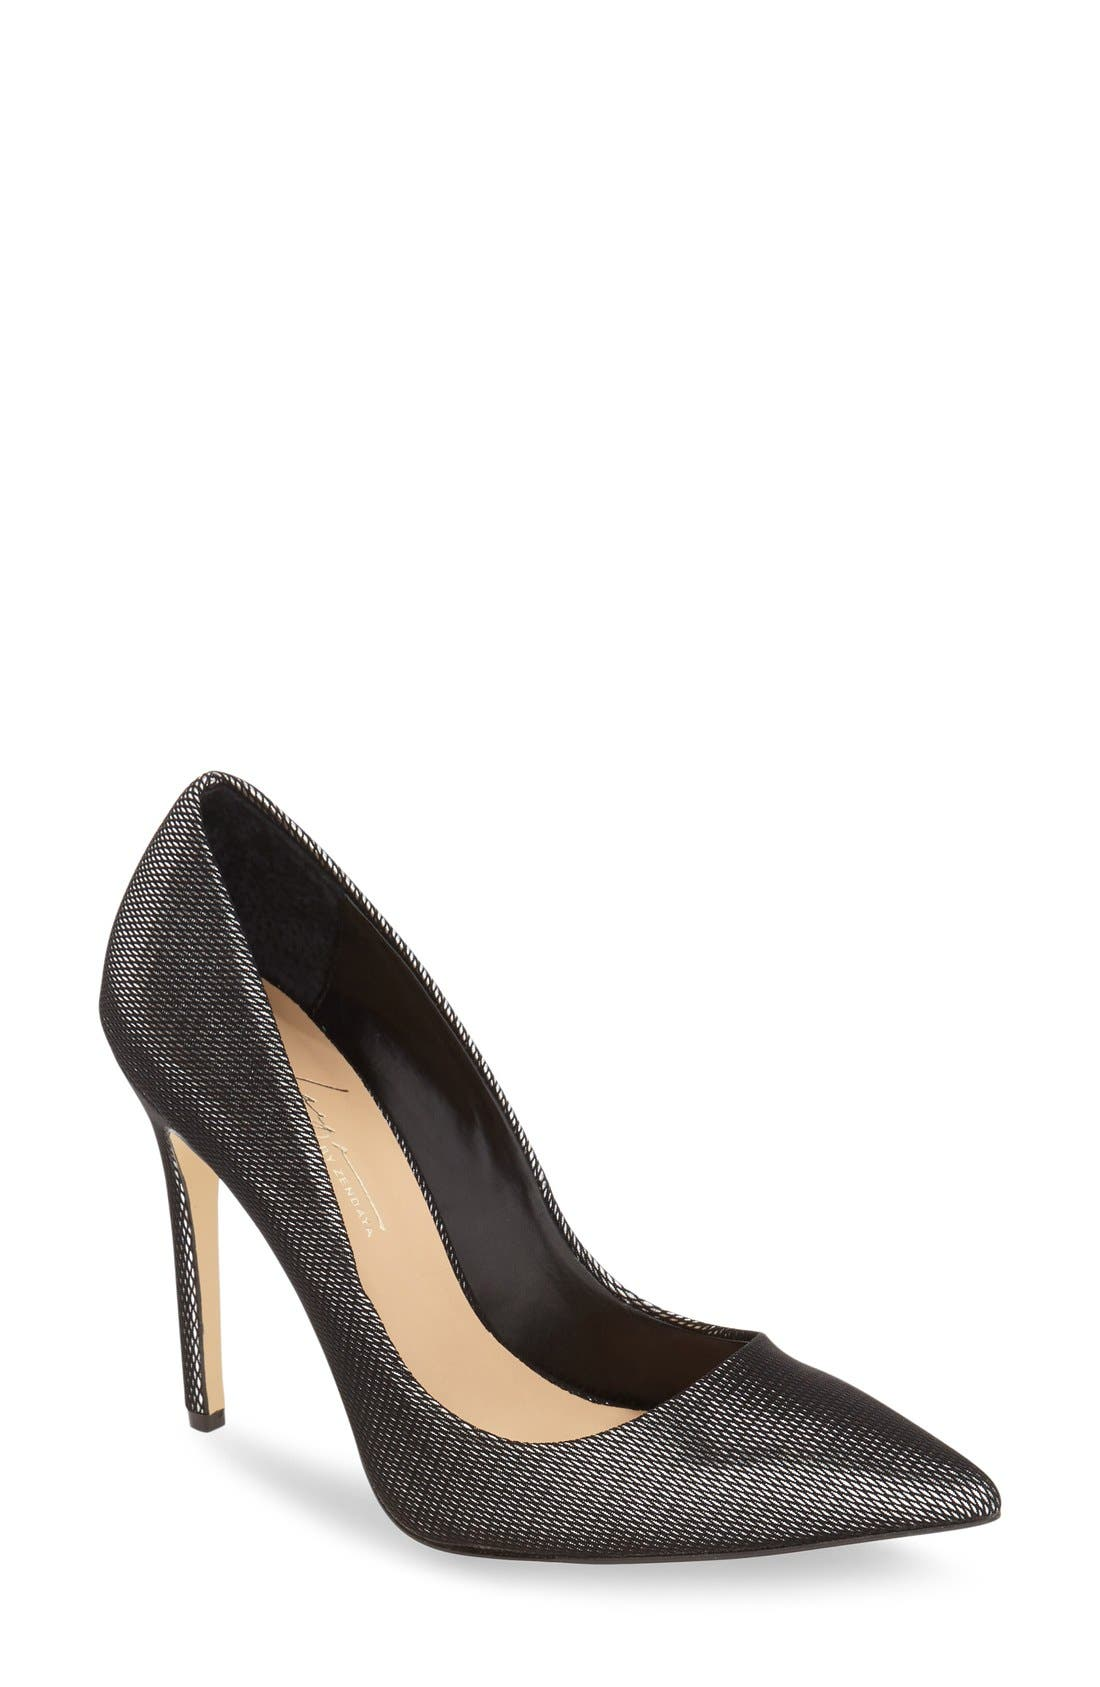 Alternate Image 1 Selected - Daya by Zendaya 'Kyle' Pointy Toe Pump (Women)